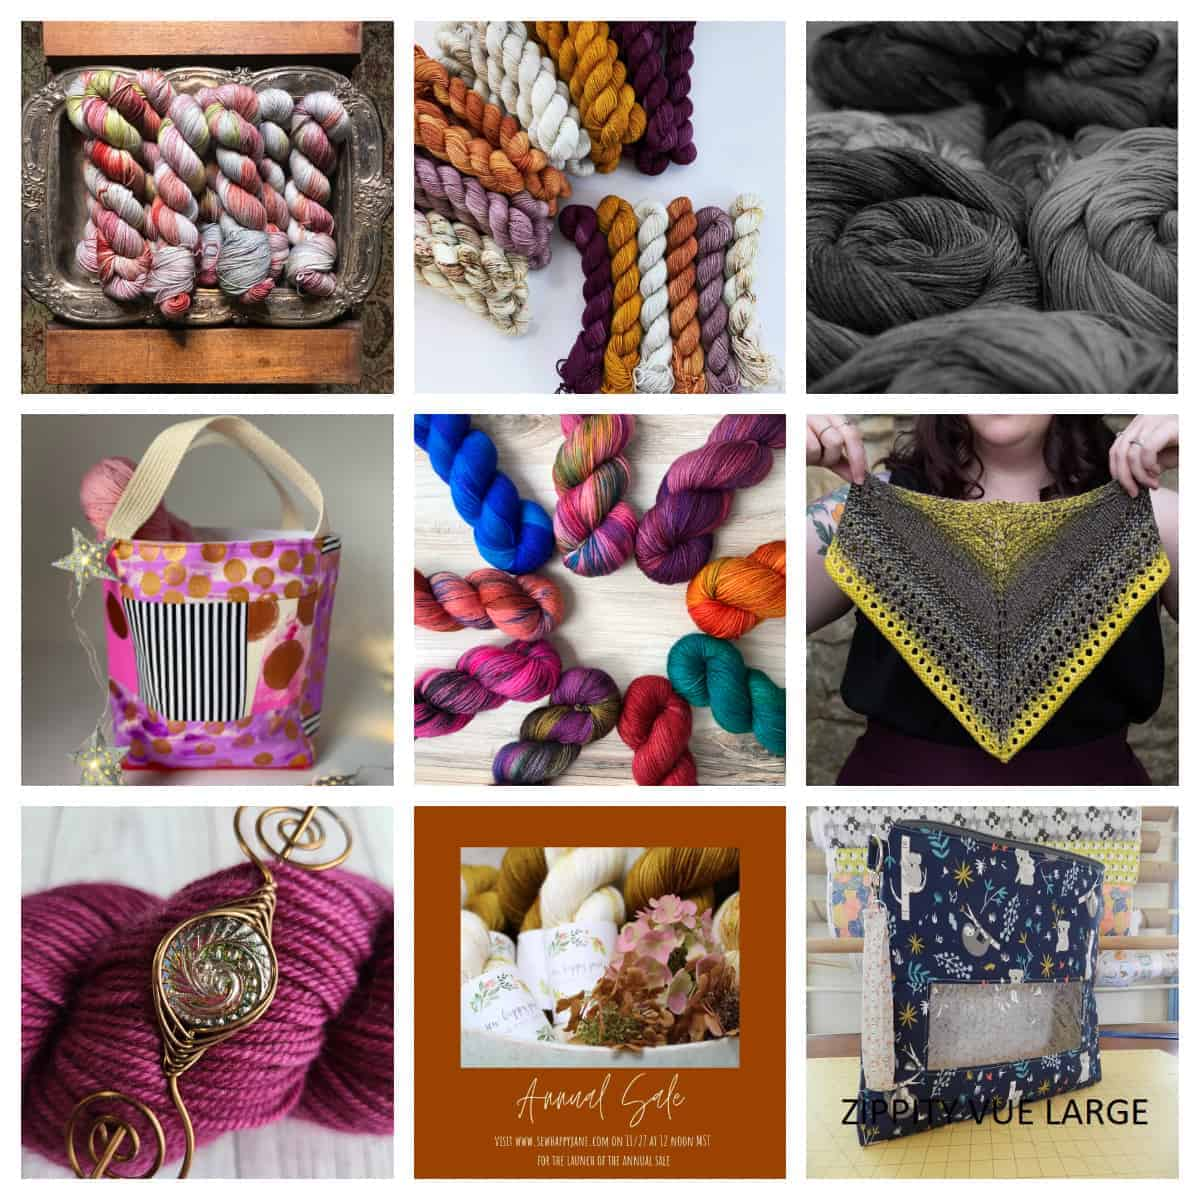 A collage of yarn and bags.